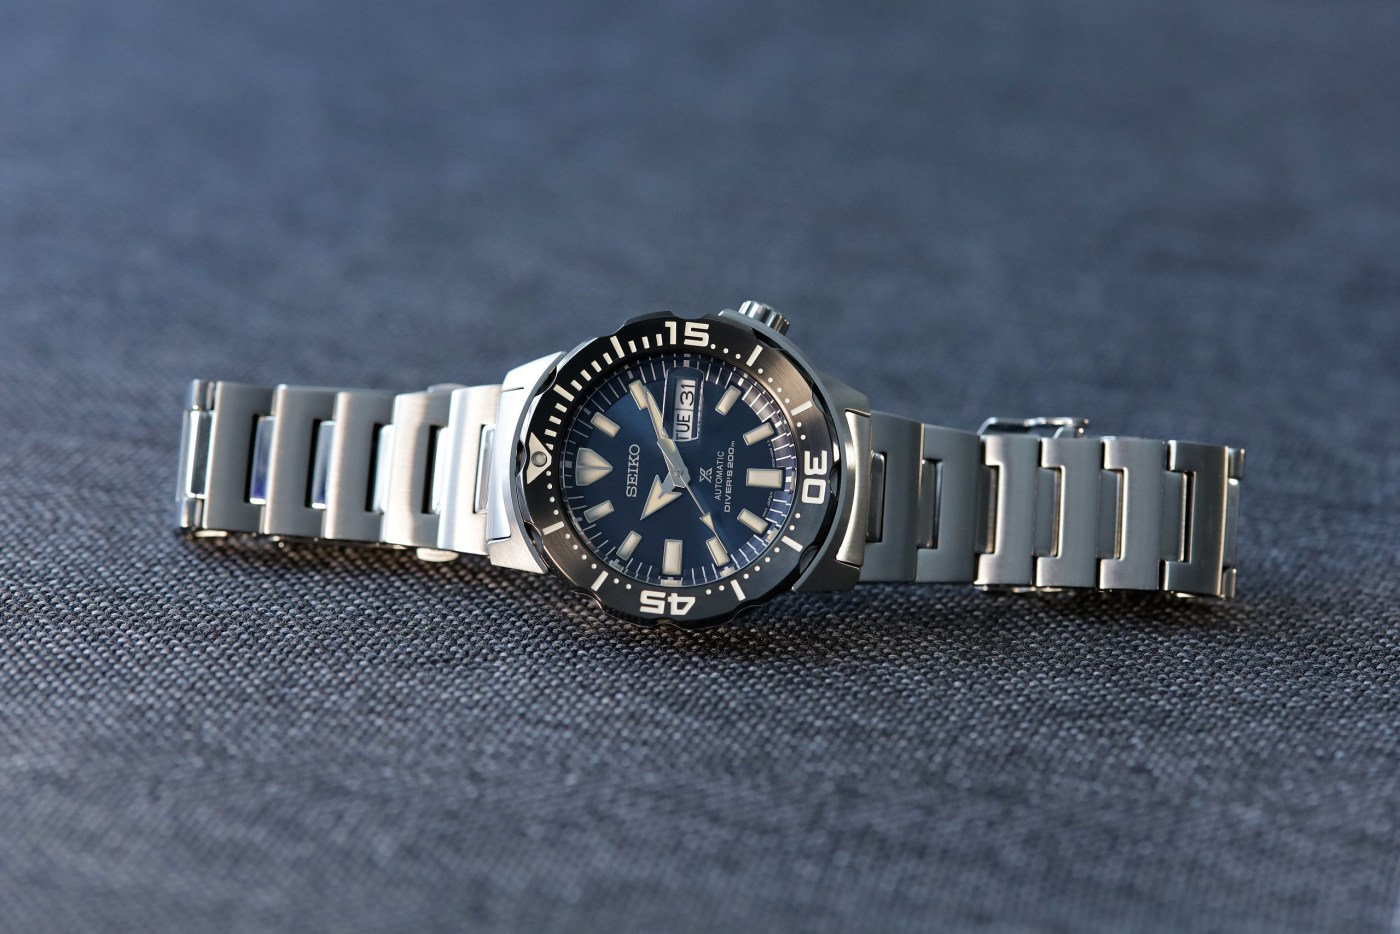 Seiko Prospex Ref SRPD25 Monster Automatic Diver full side view